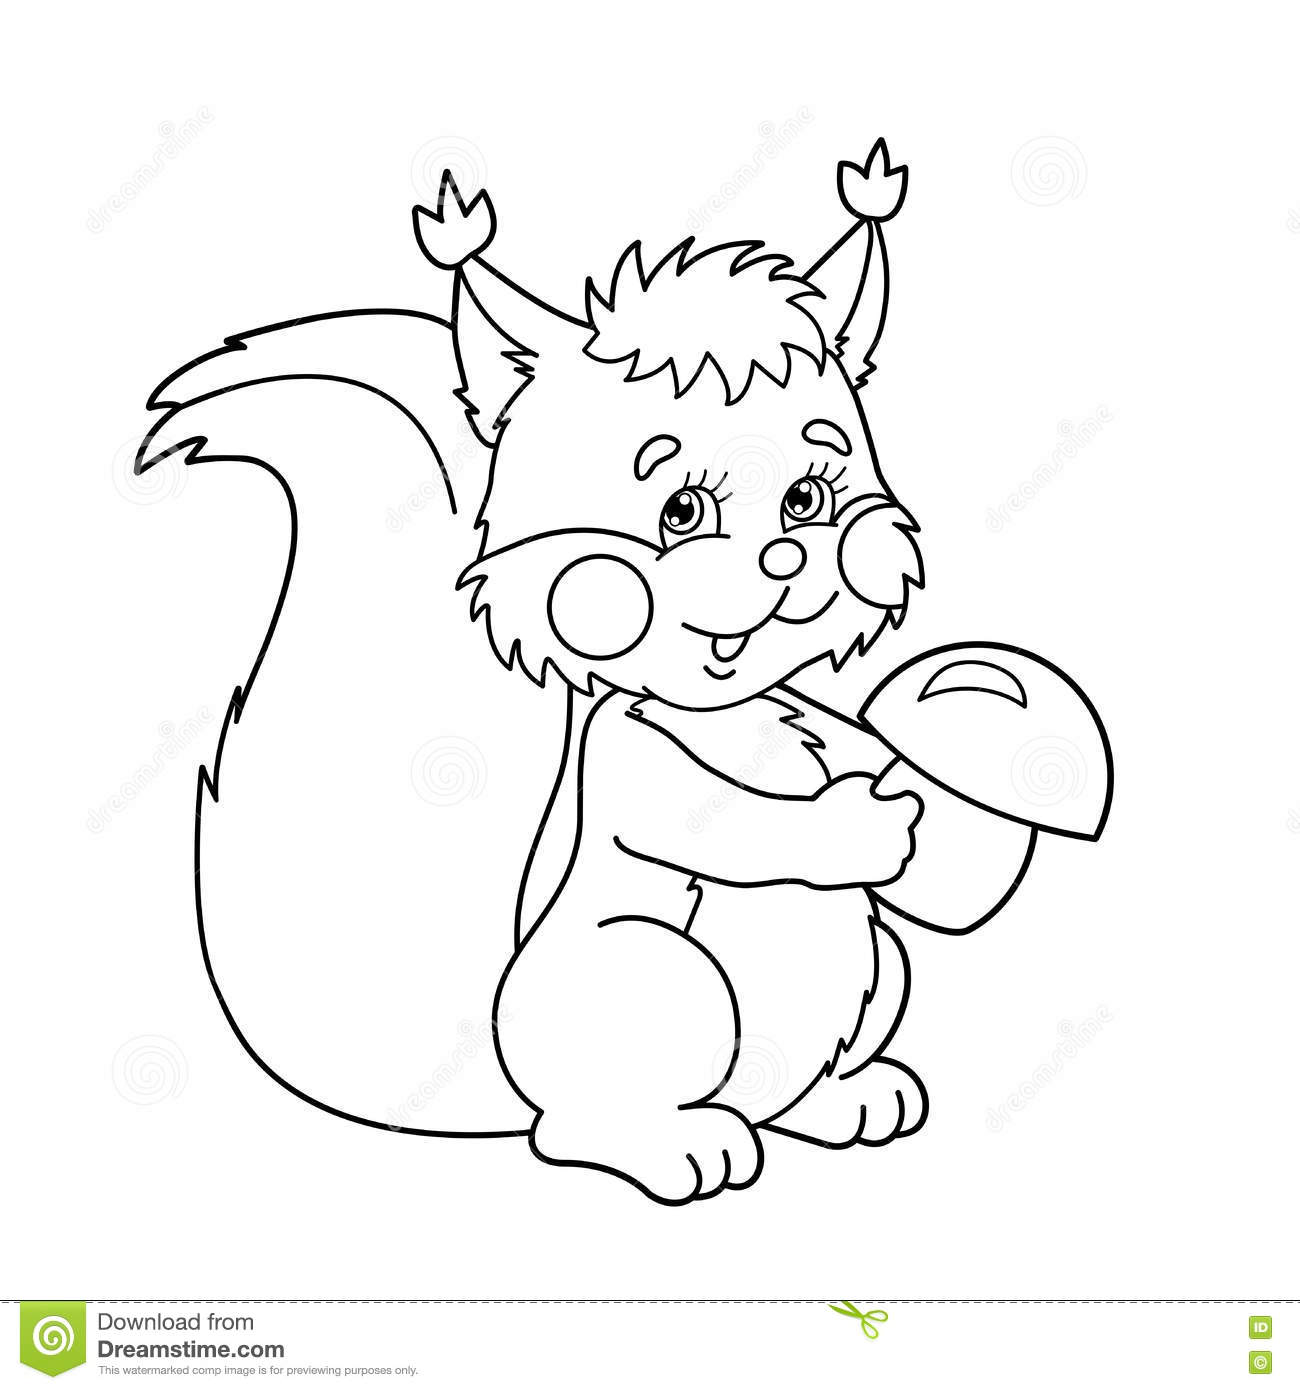 Coloring Page Outline Of Cartoon Squirrel With Mushrooms